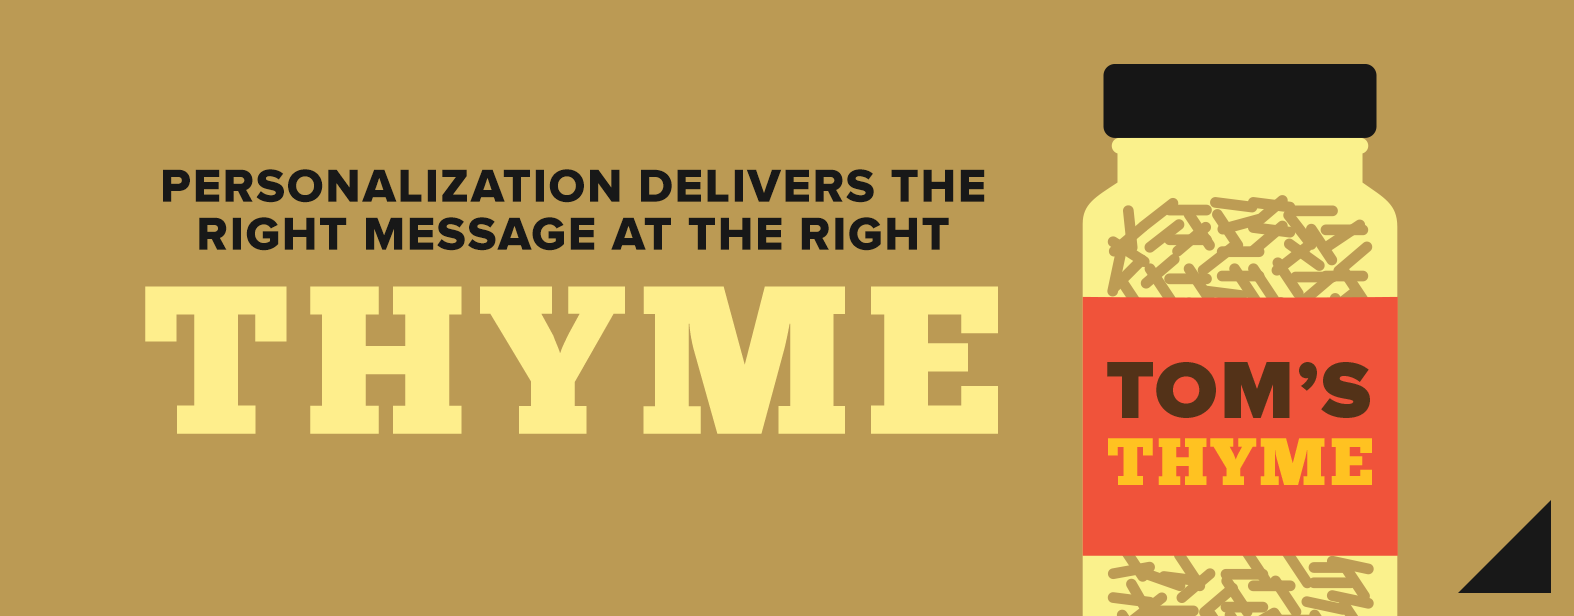 Personalization delivers the right message at the right thyme.